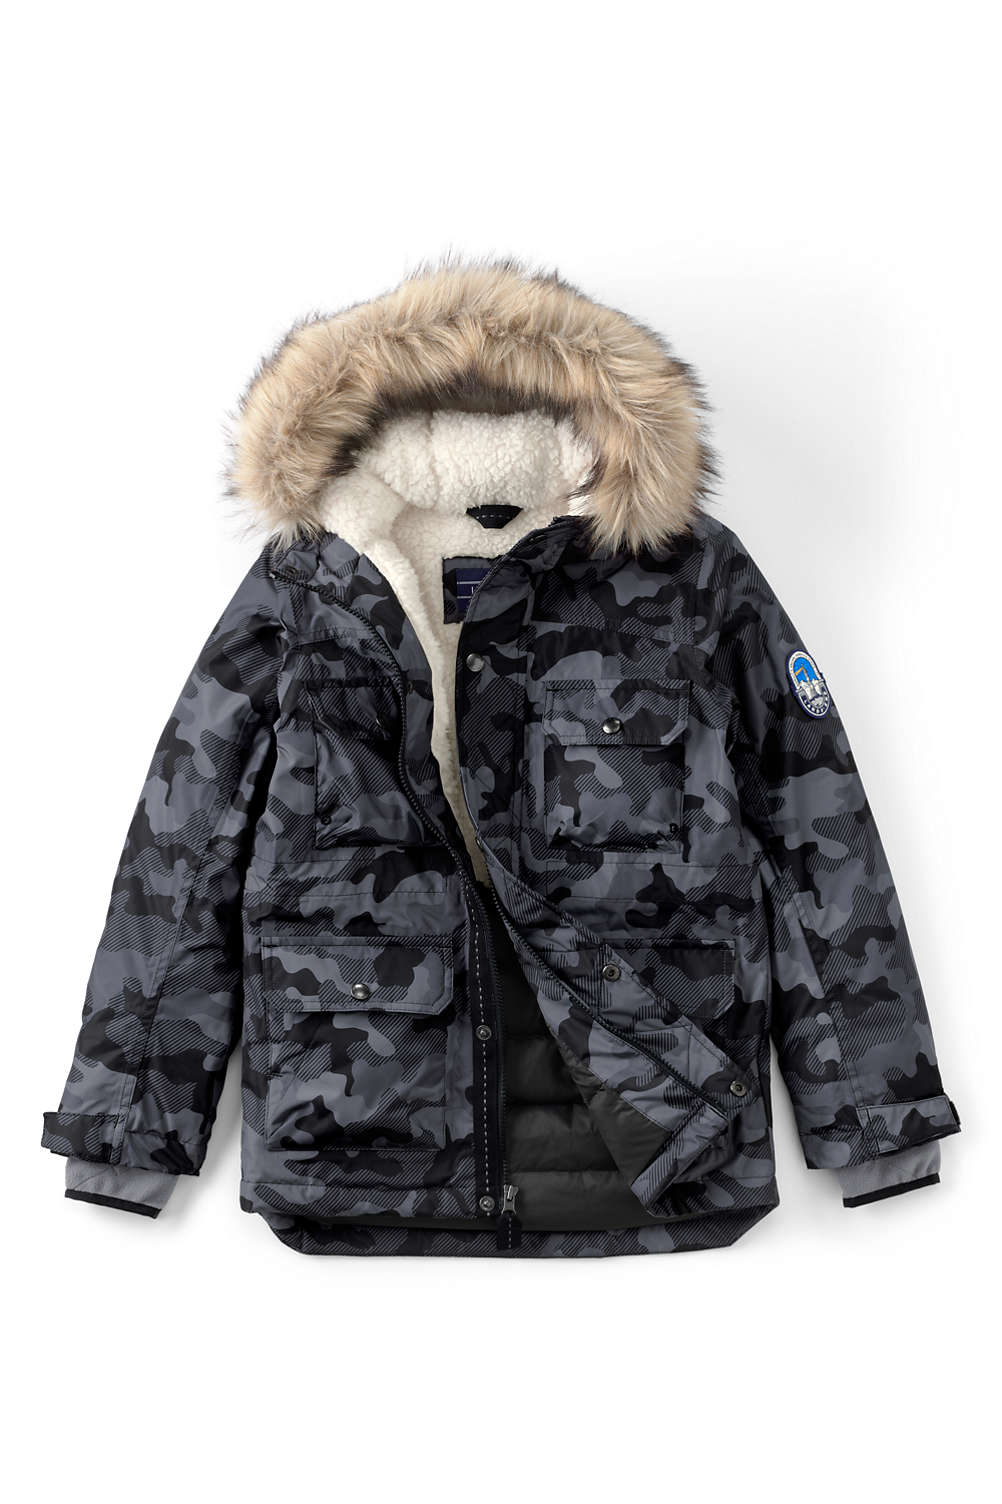 8b45ae3fae07 Boys Expedition Down Winter Parka from Lands  End